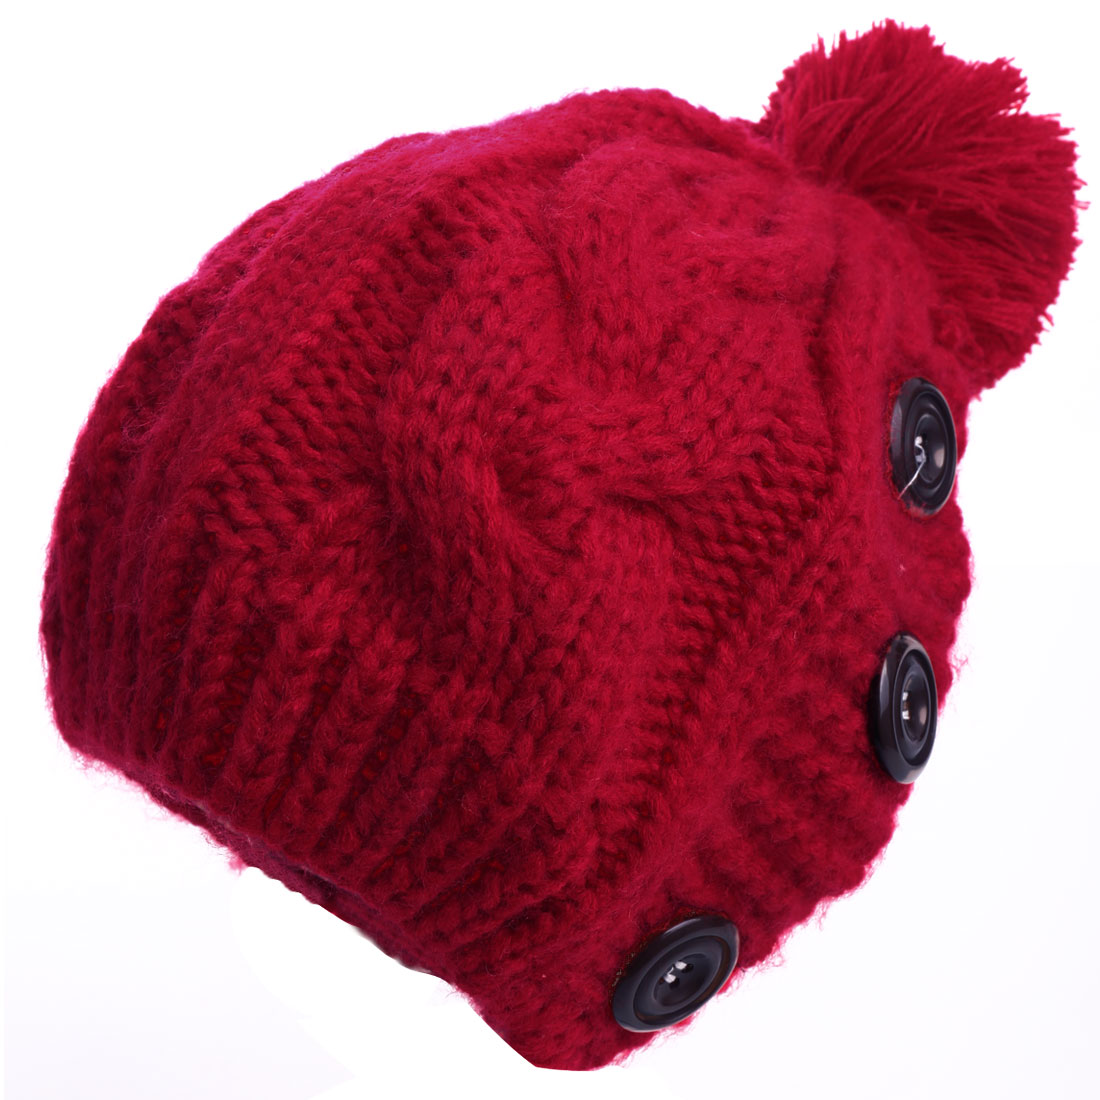 Lady Pom-pom Button Design Braided Detail Stretchy Red Knitted Beanie Hat